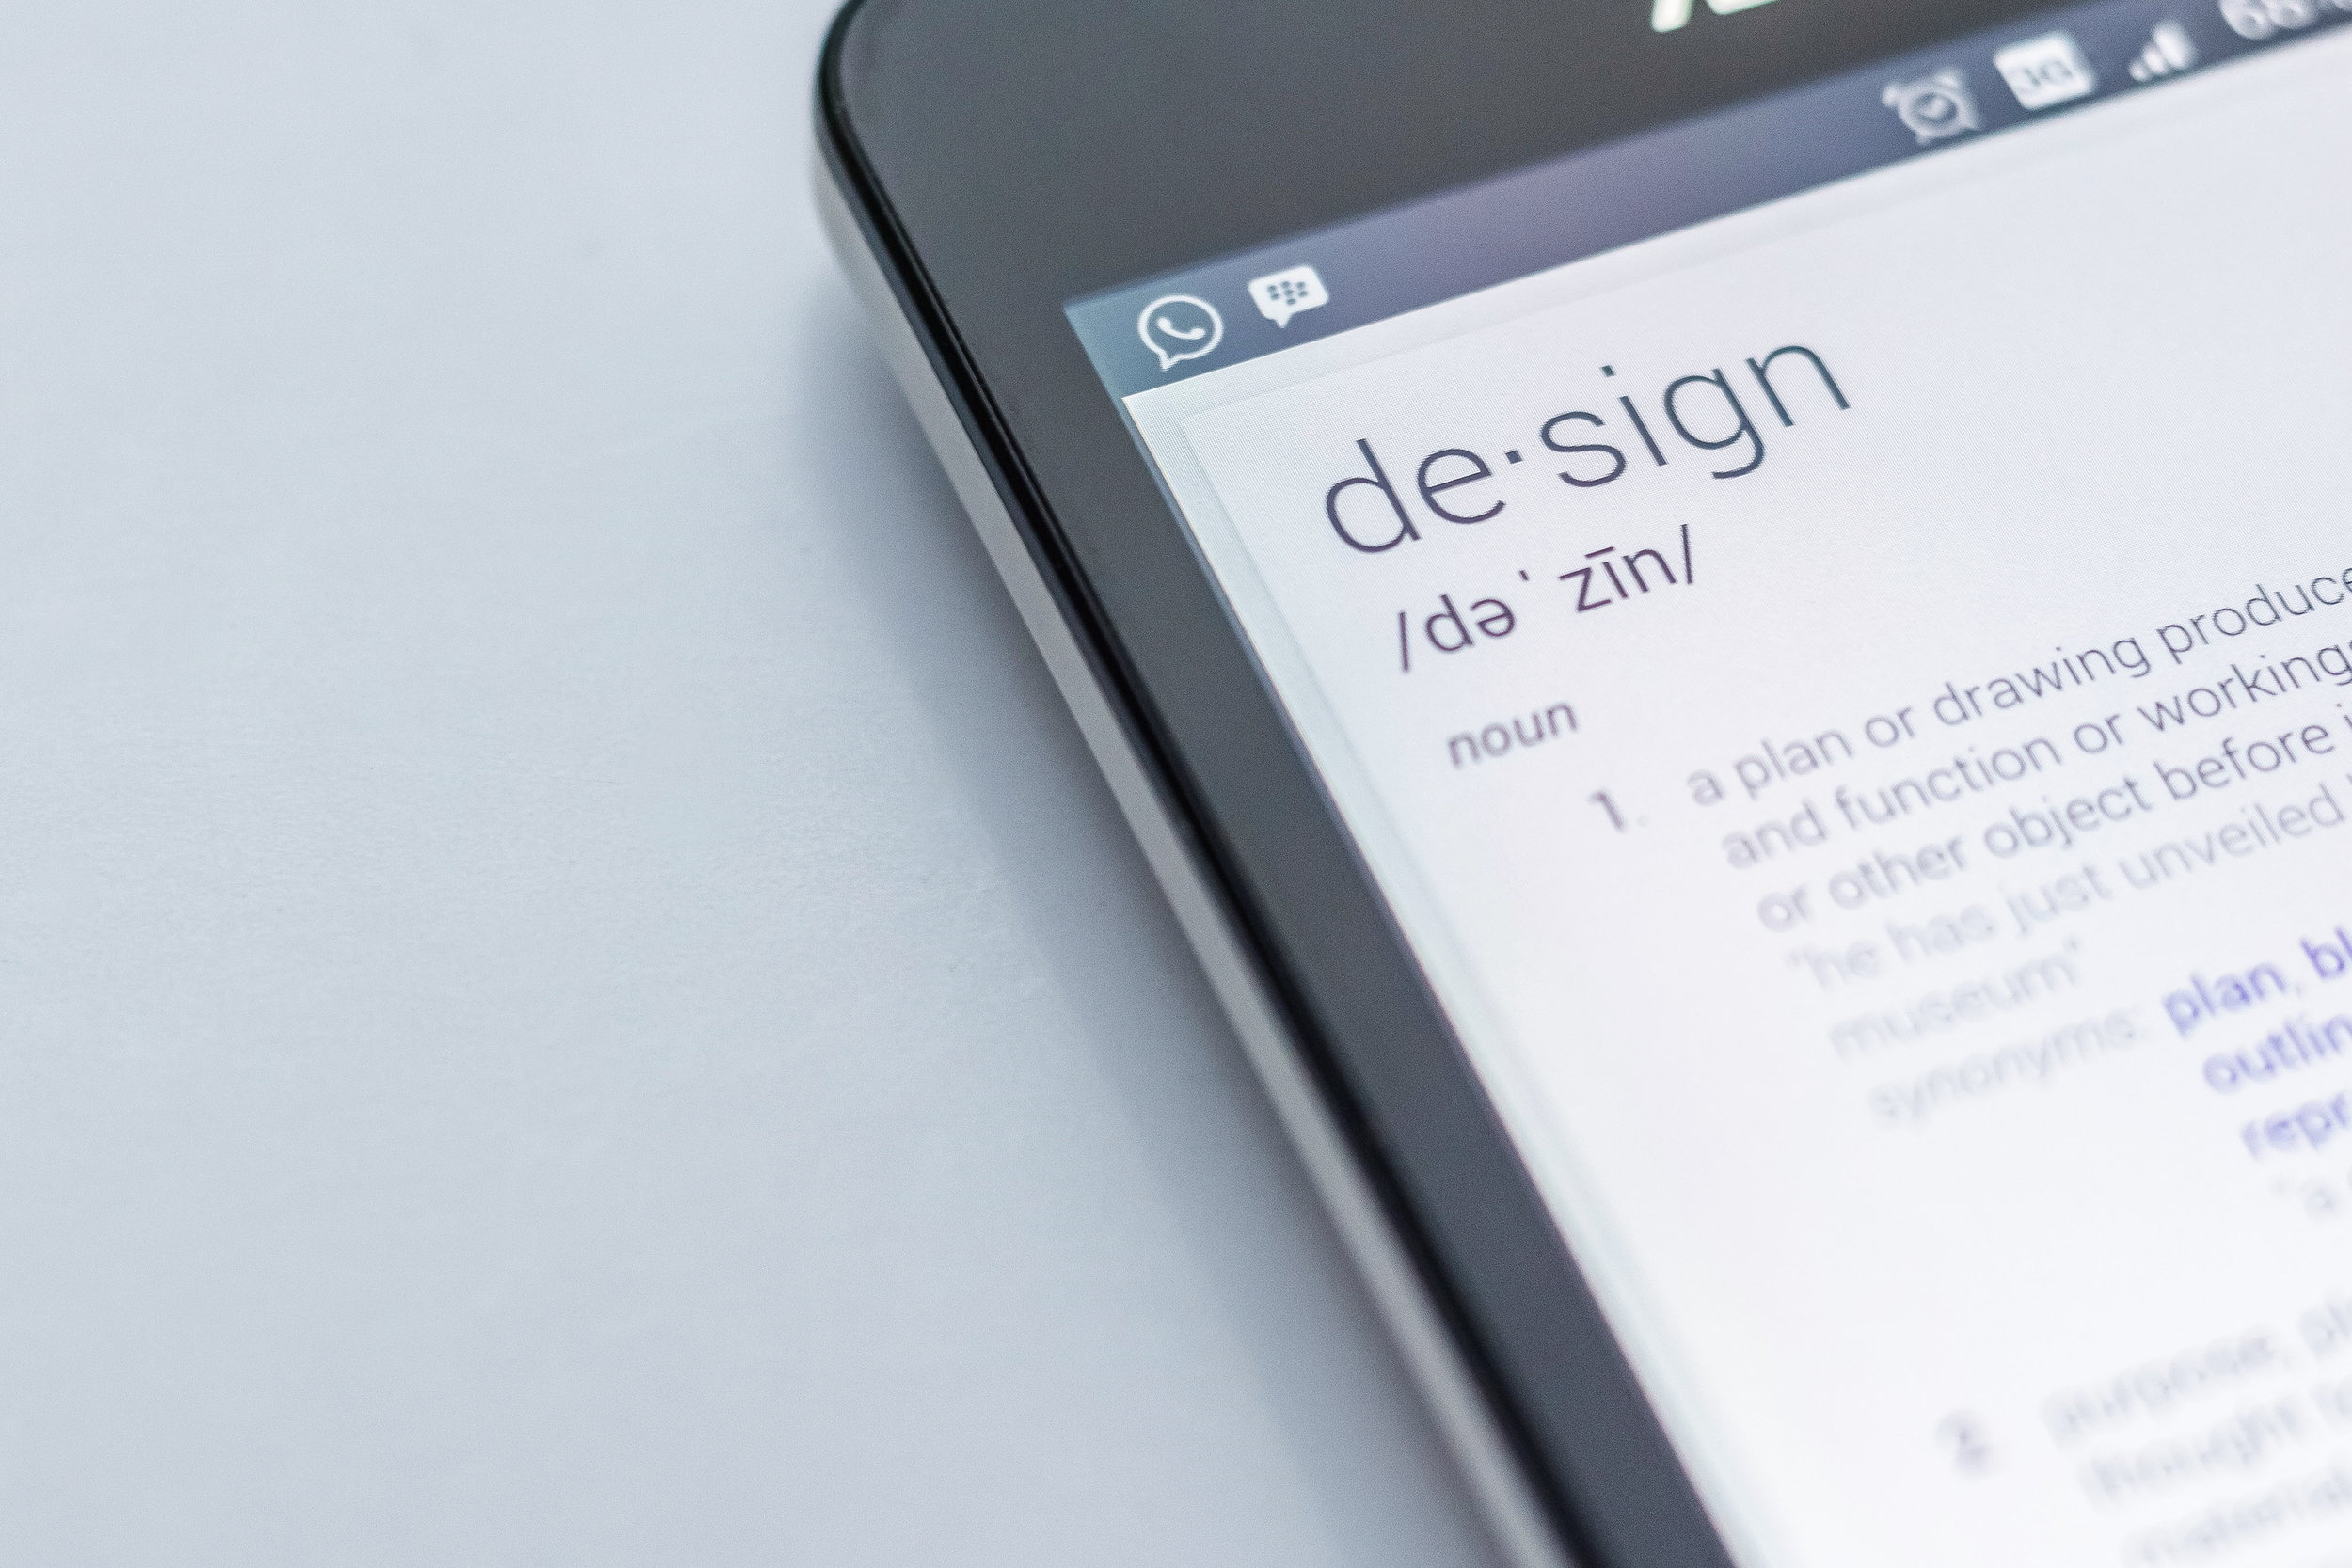 Image showing the definition of design on a smart phone.